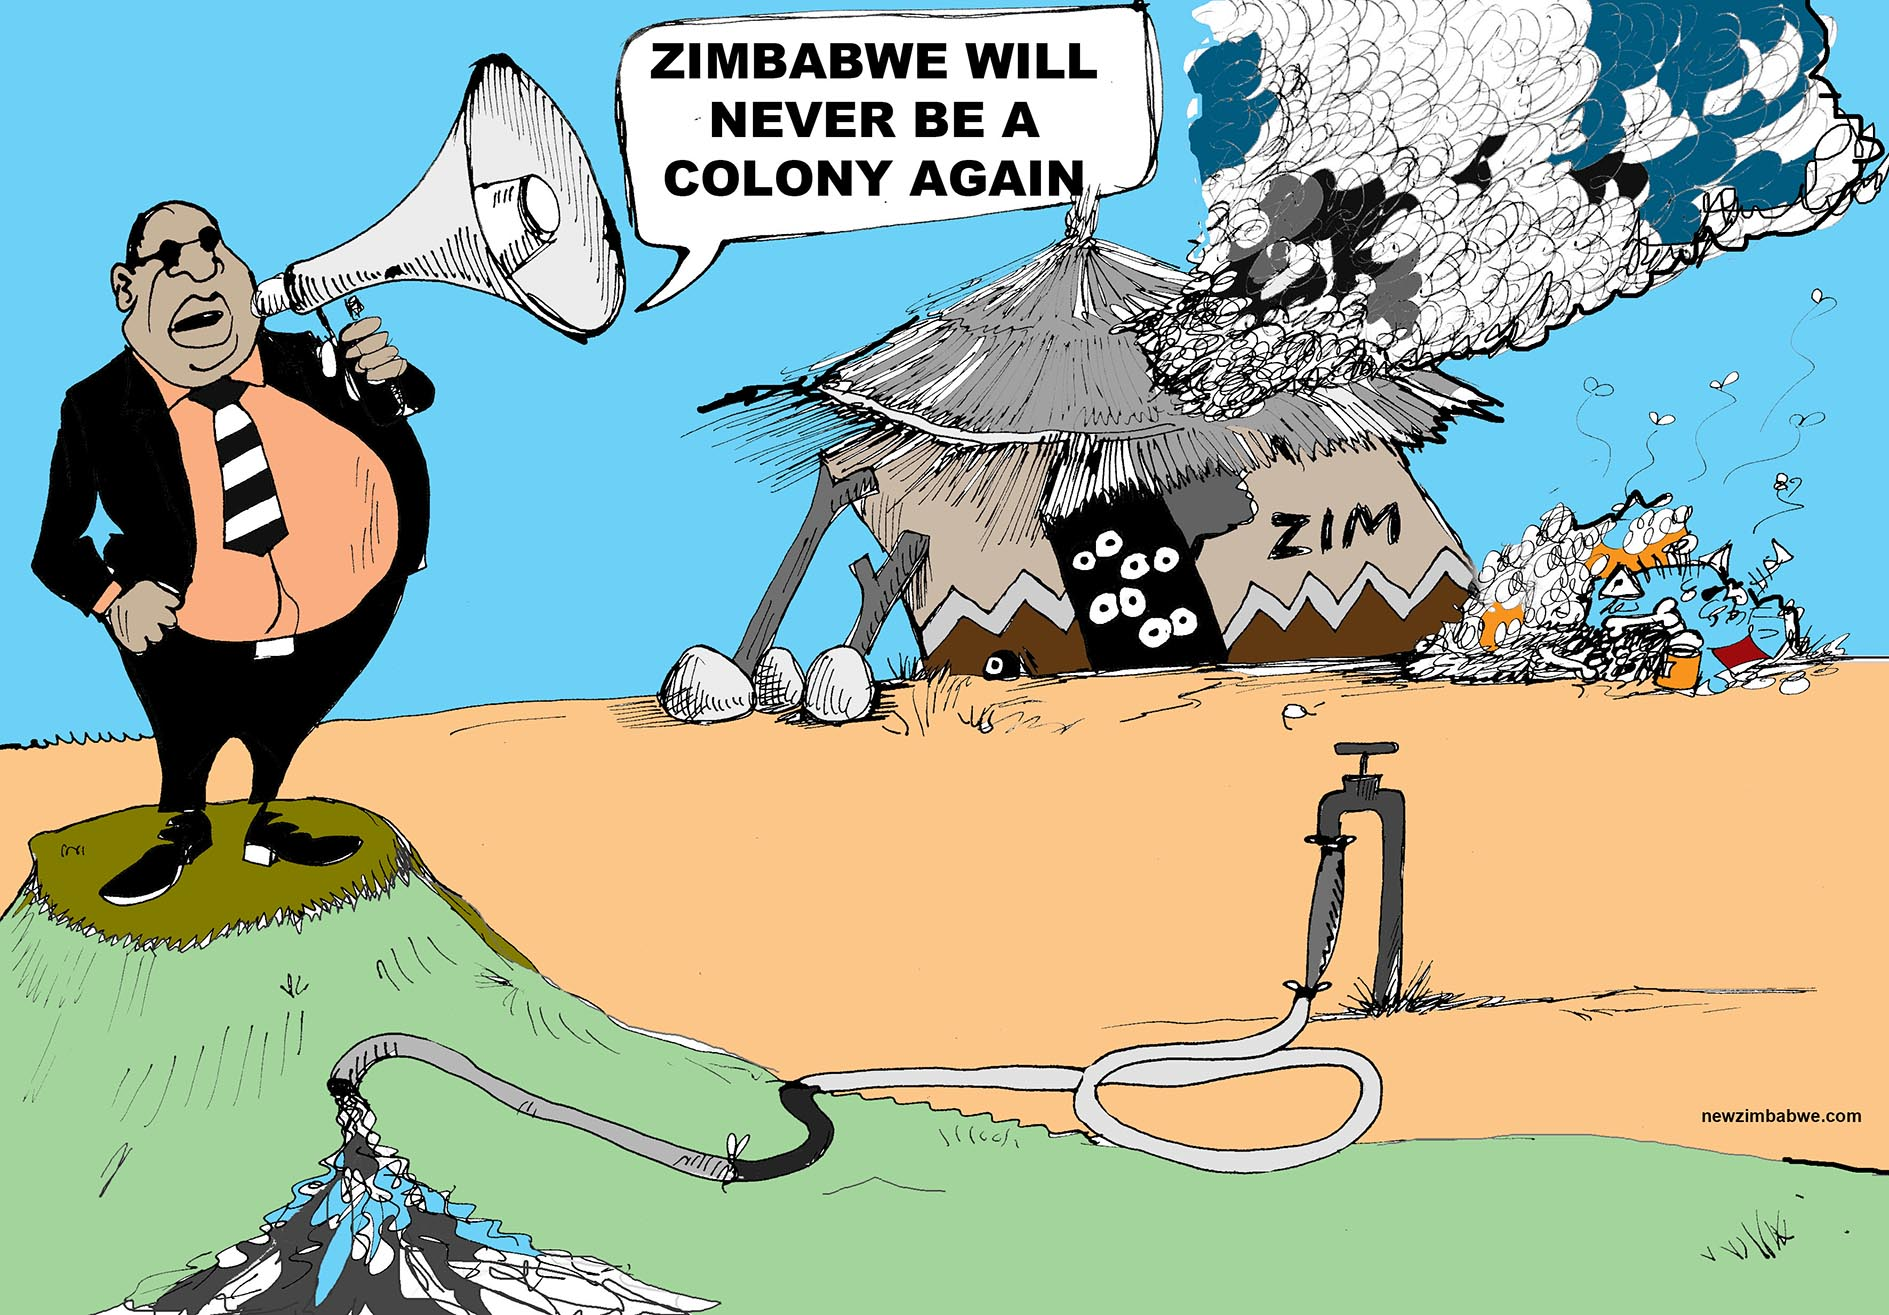 Zimbabwe will never be a colony again